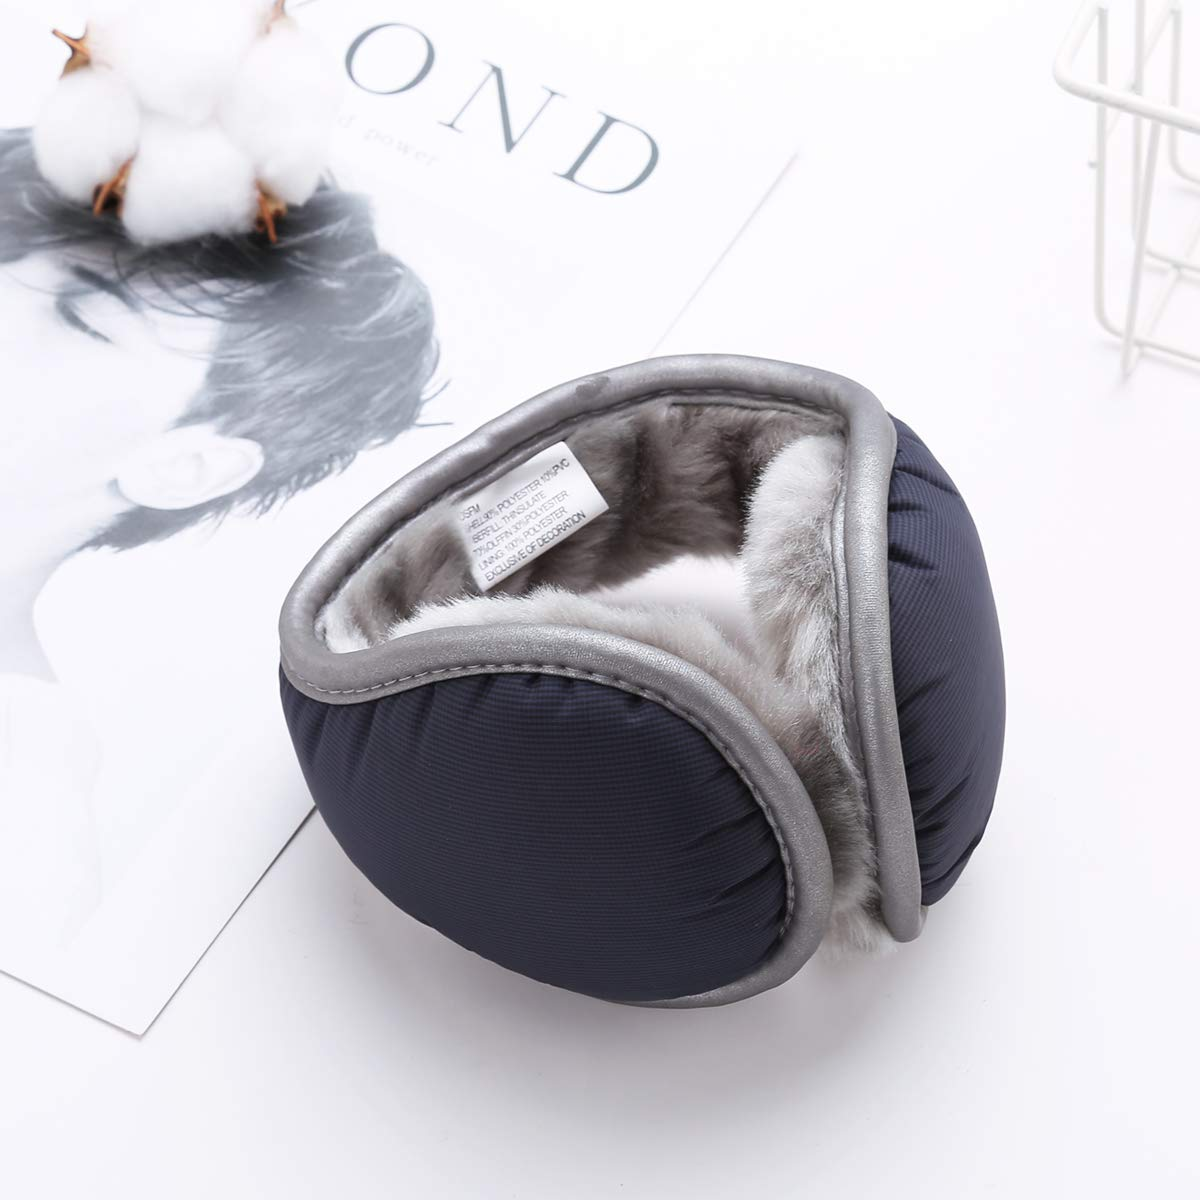 Century Star Foldable Ear Muffs Snowflakes Knitted Solid Winter Ear Warmer Plush Faux Furry Accessory Outdoor Earmuffs